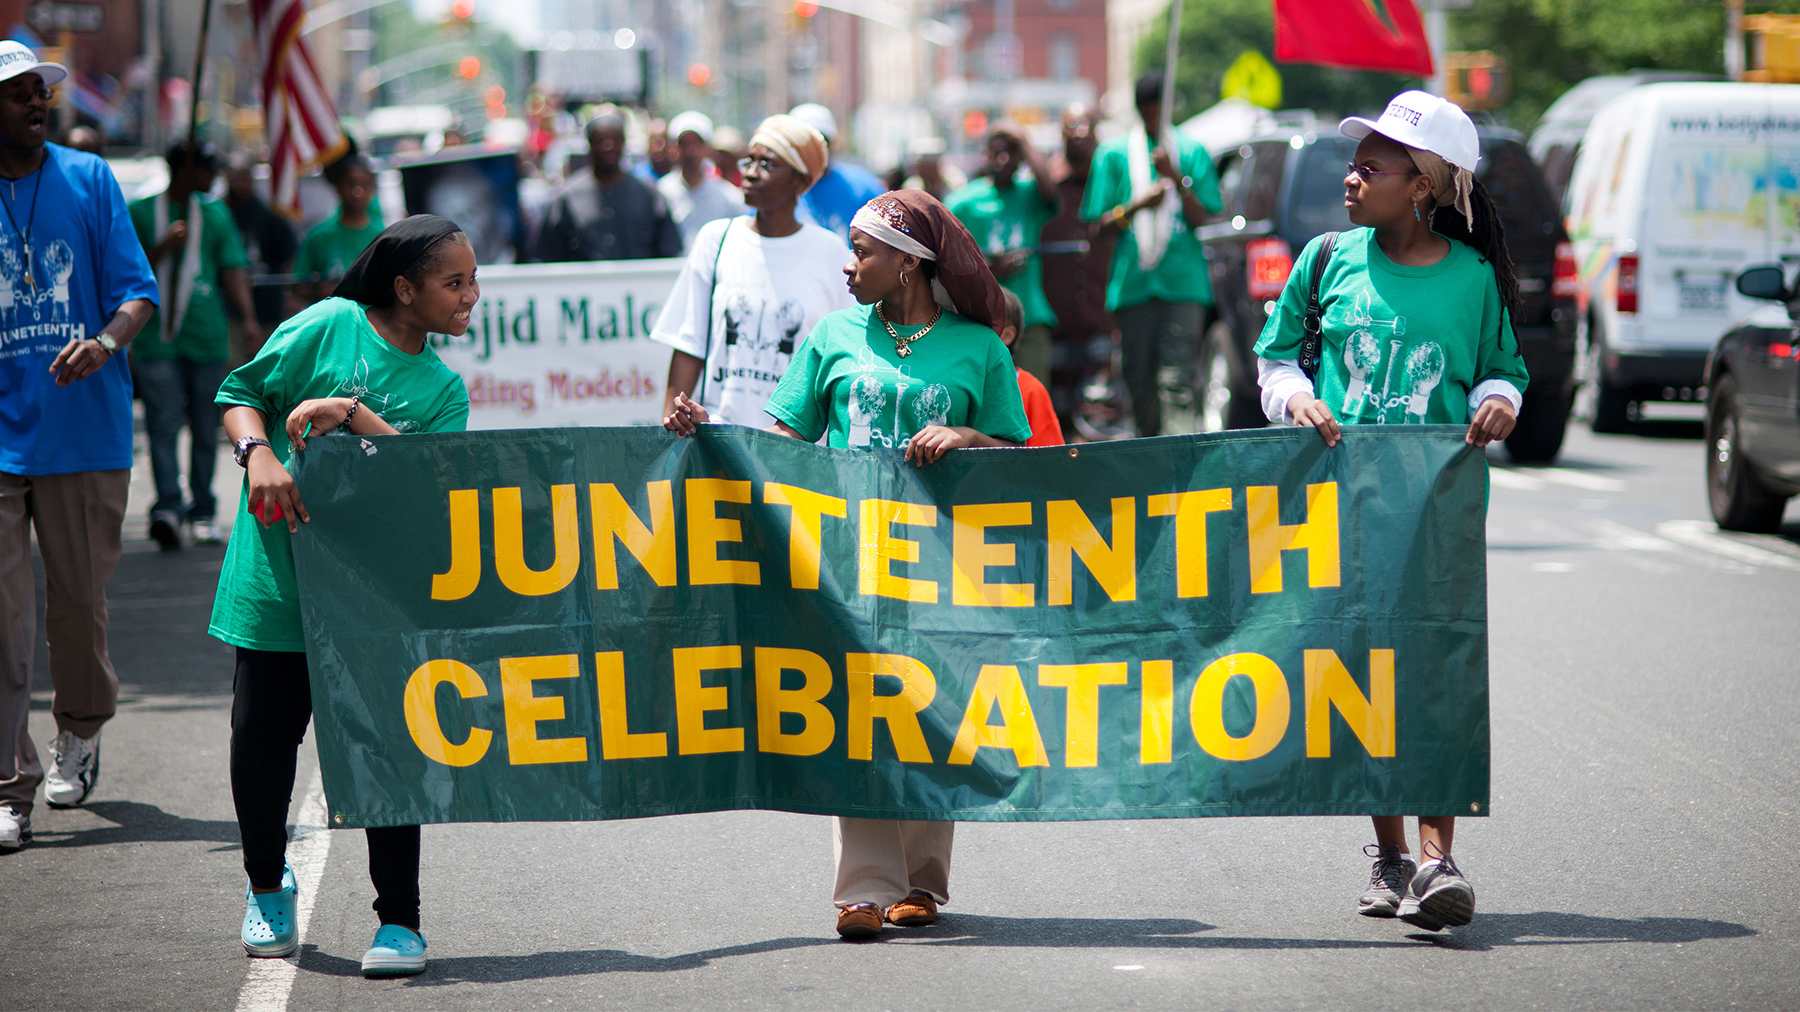 Celebrating Juneteenth | Southern Poverty Law Center